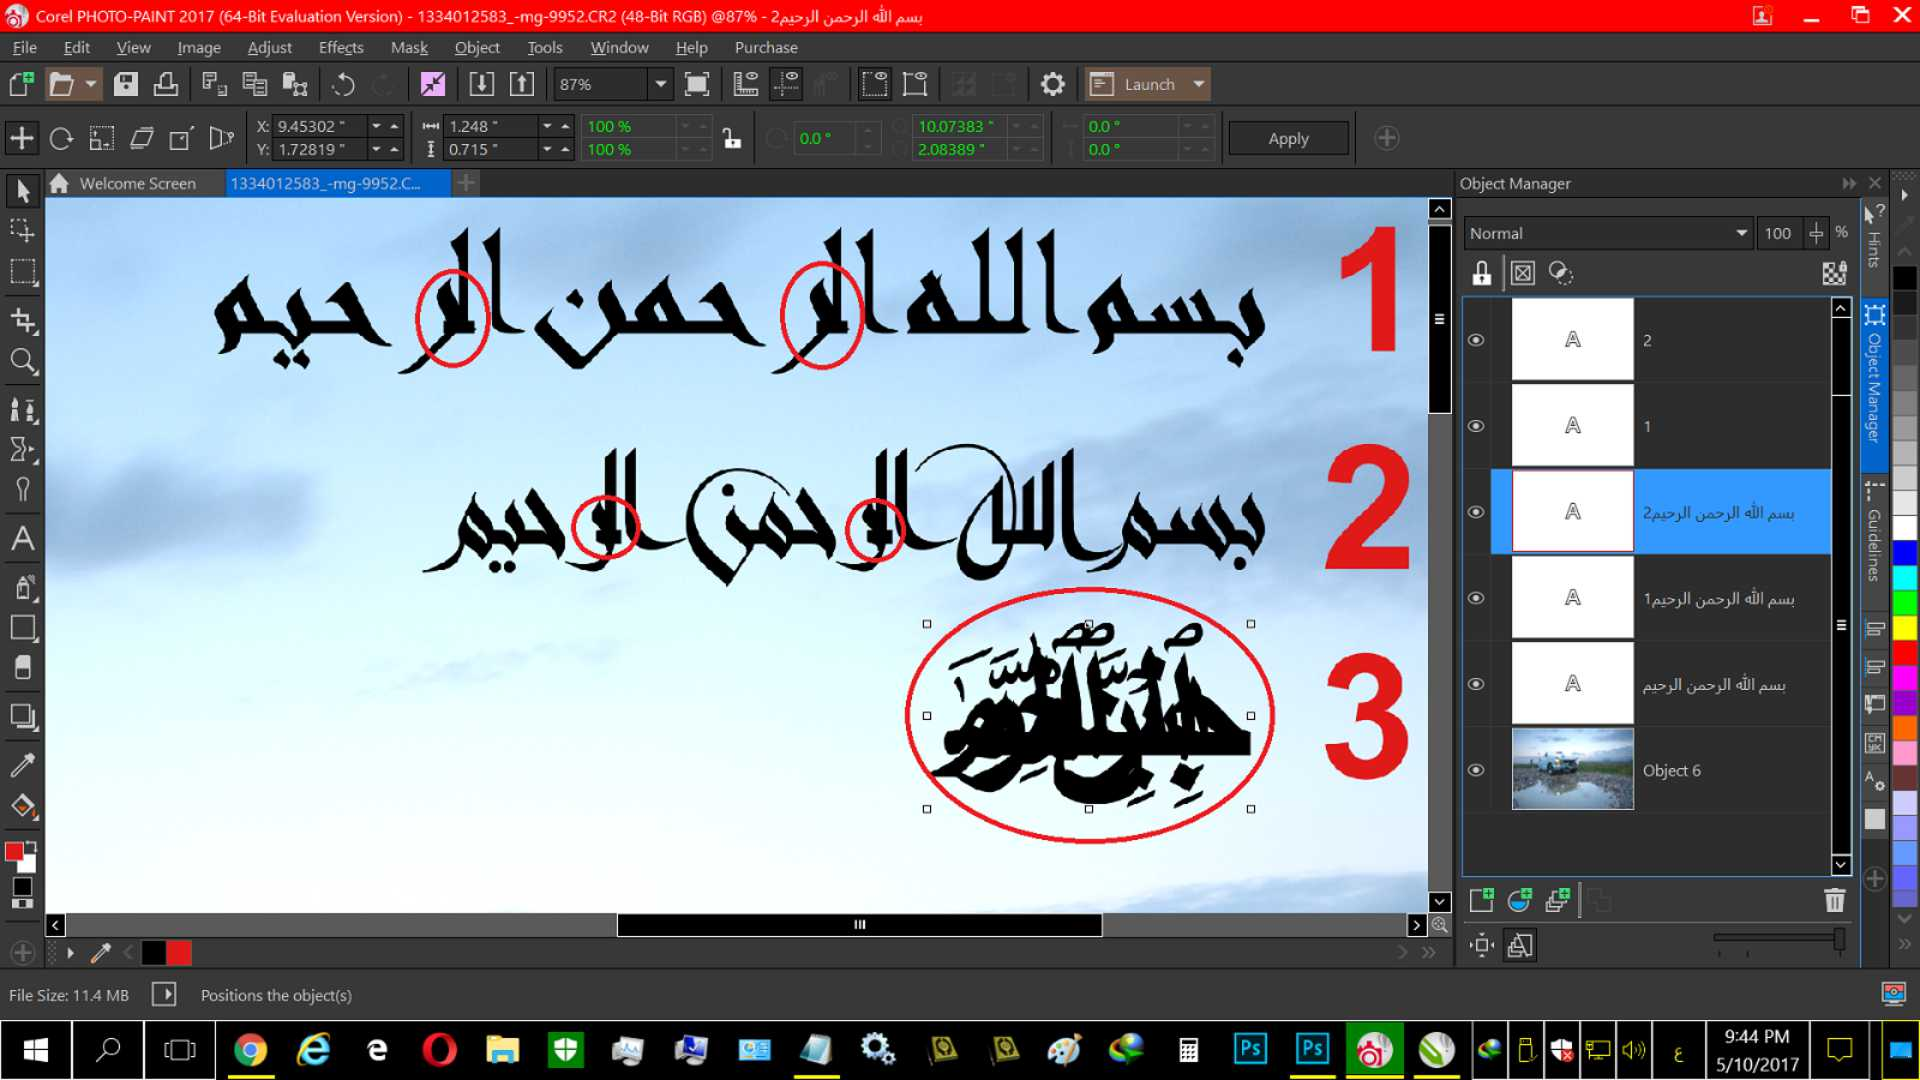 Problem in some Arabic fonts - CorelDRAW Graphics Suite 2017